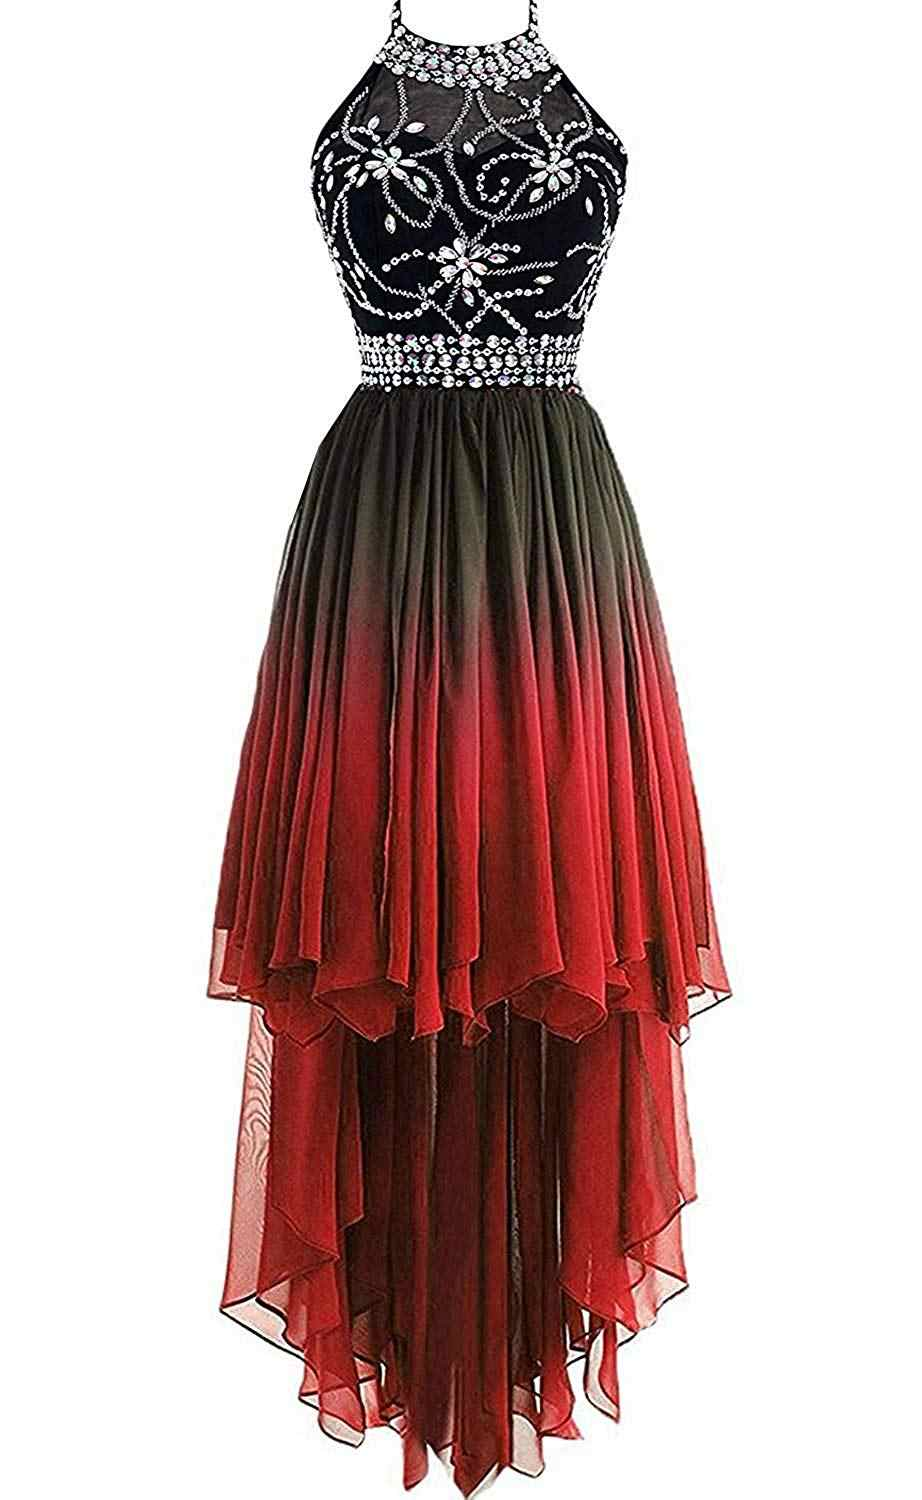 5ac95a0df86 Detail Feedback Questions about Bealegantom 2019 Halter Hi Lo Gradient  Chiffon Short Prom Dresses Ombre Beads Evening Homecoming Graduation Party  Gown ...